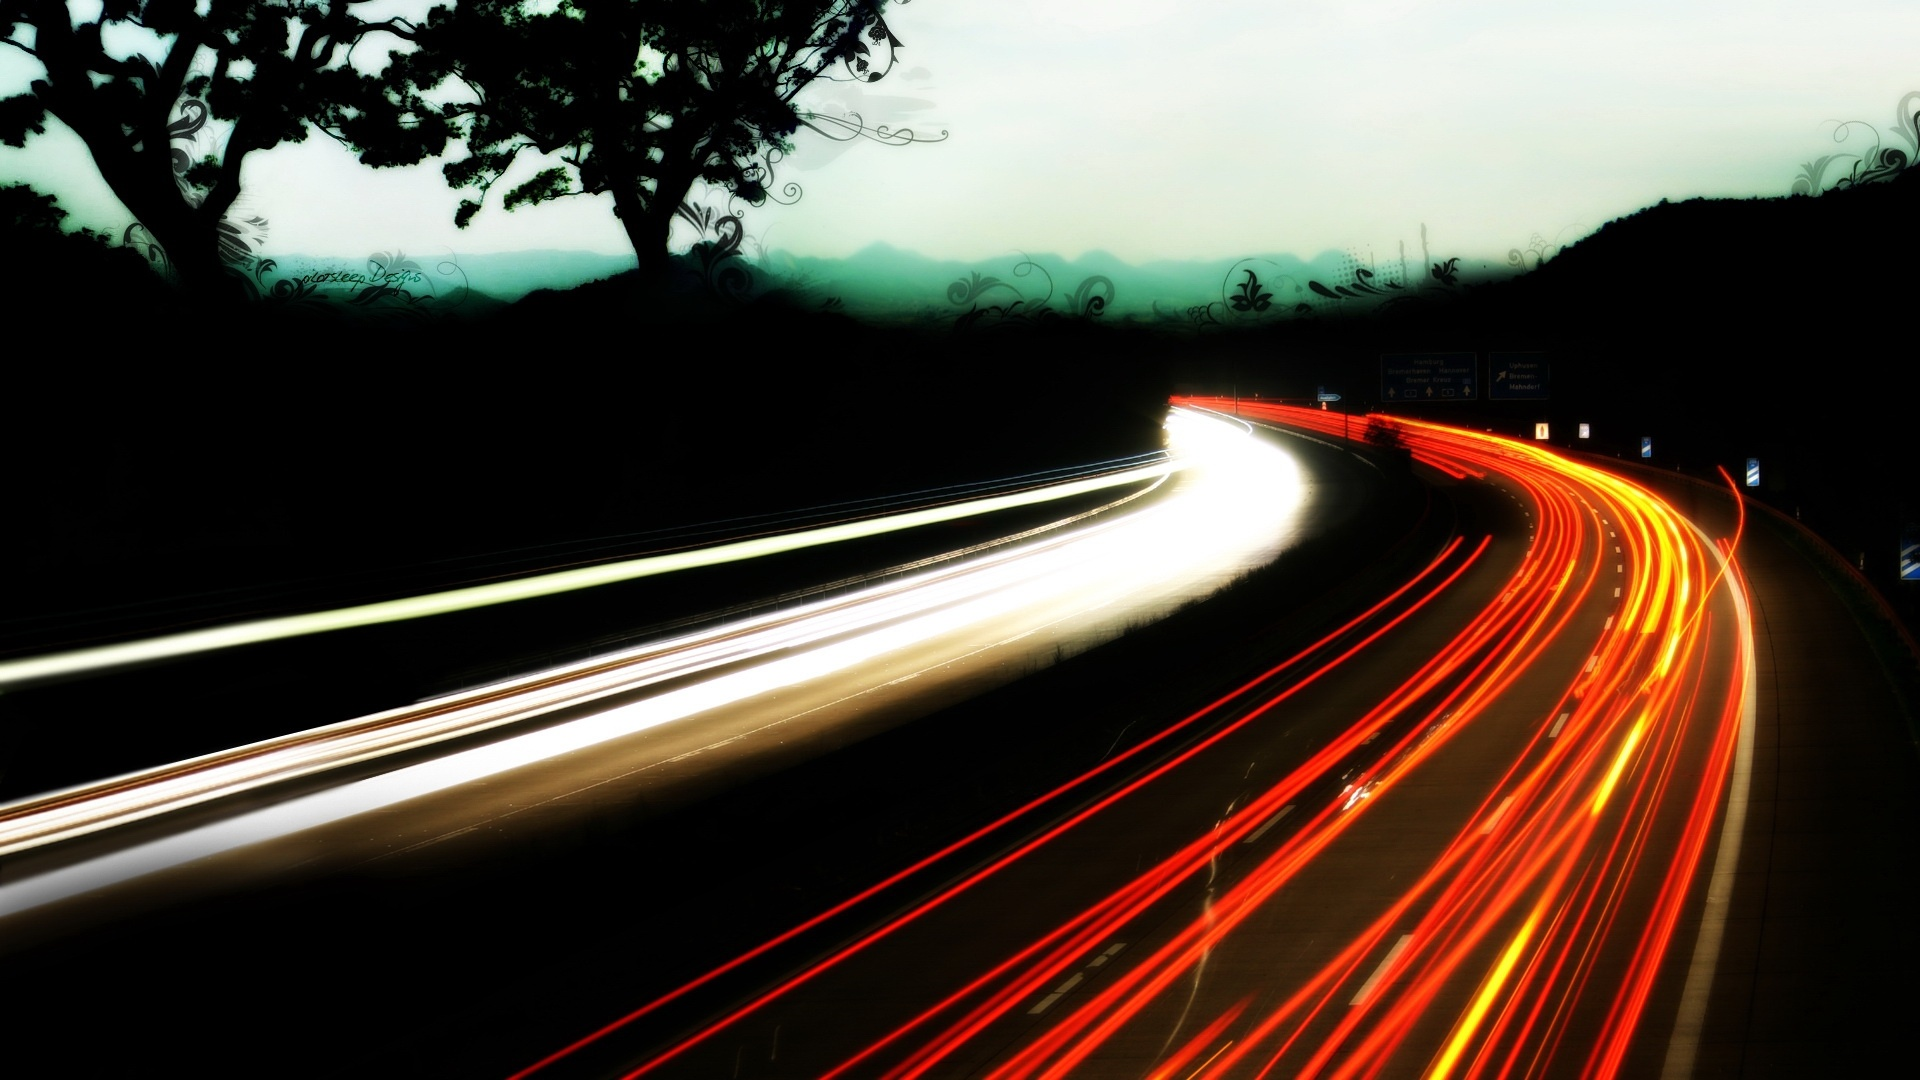 speed-lights-road